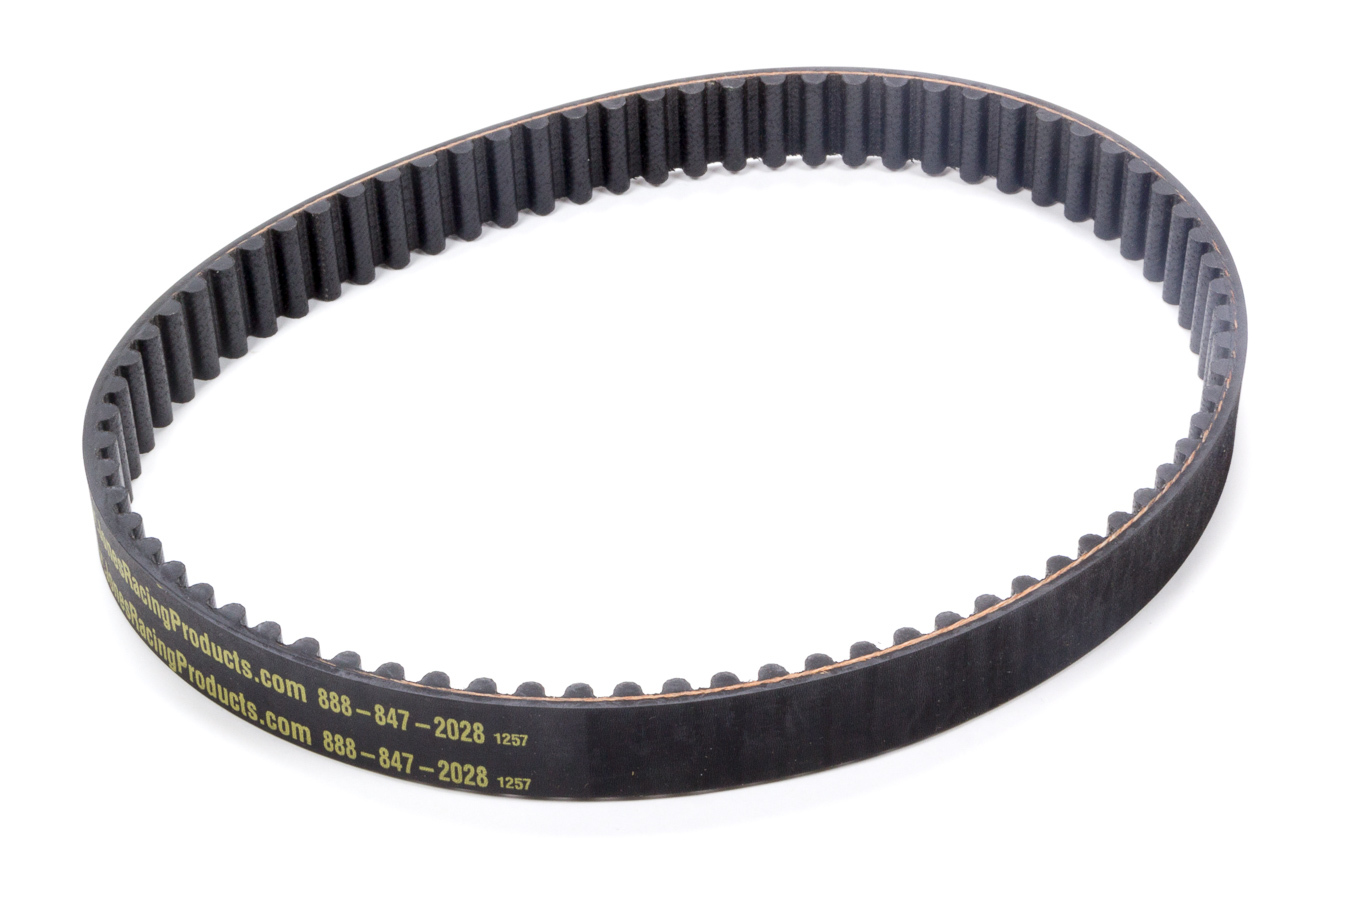 Jones Racing Products 592-20HD HTD Drive Belt, 23.31 in Long, 20 mm Wide, 8 mm Pitch, Each